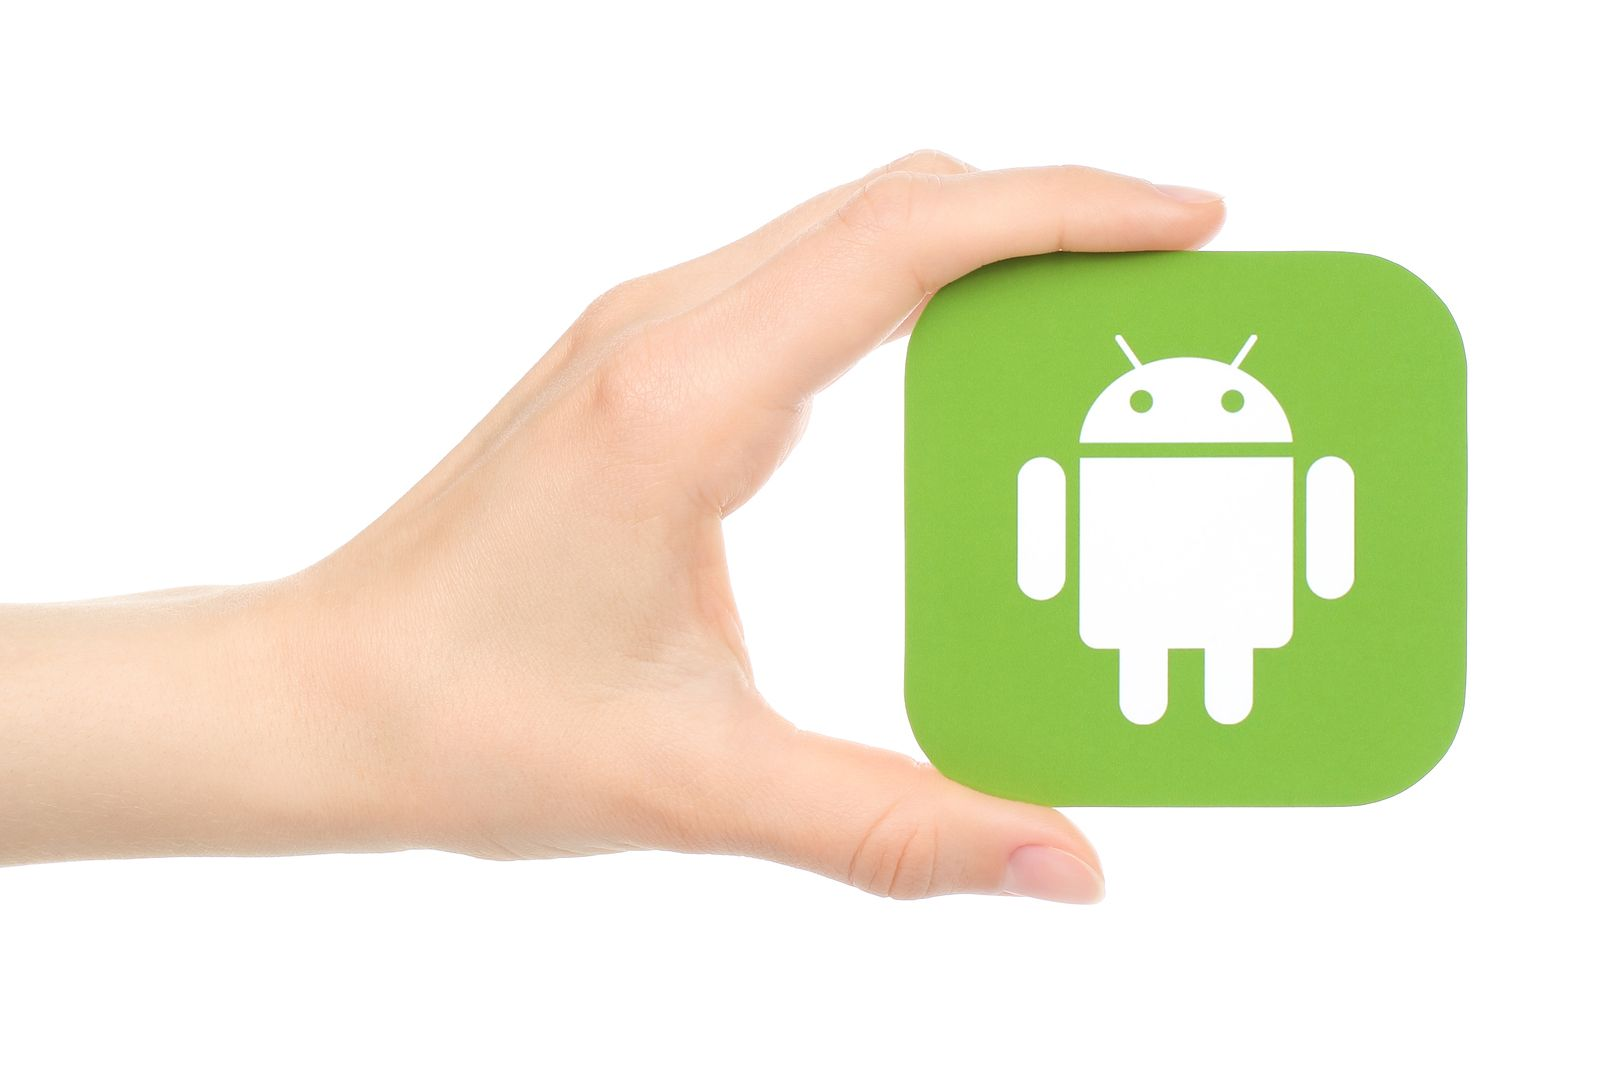 Top 3 Strengths Of Android App Development In 2019 3 Key